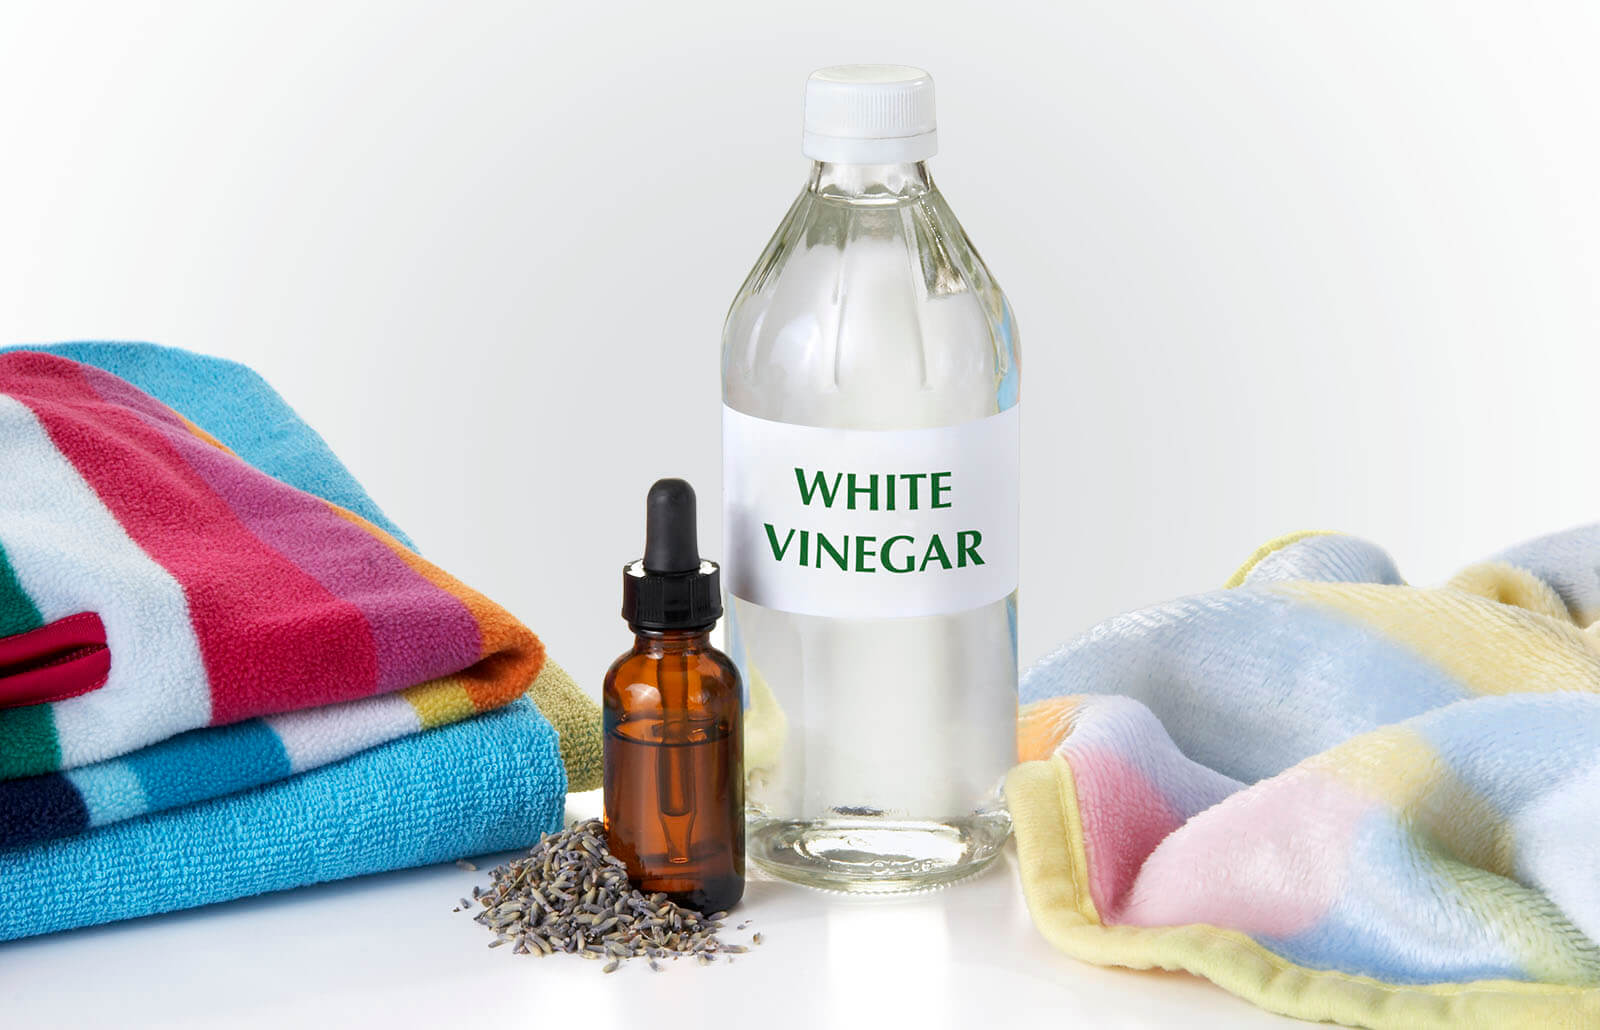 Top 10 Reasons to Use Vinegar on Clothes